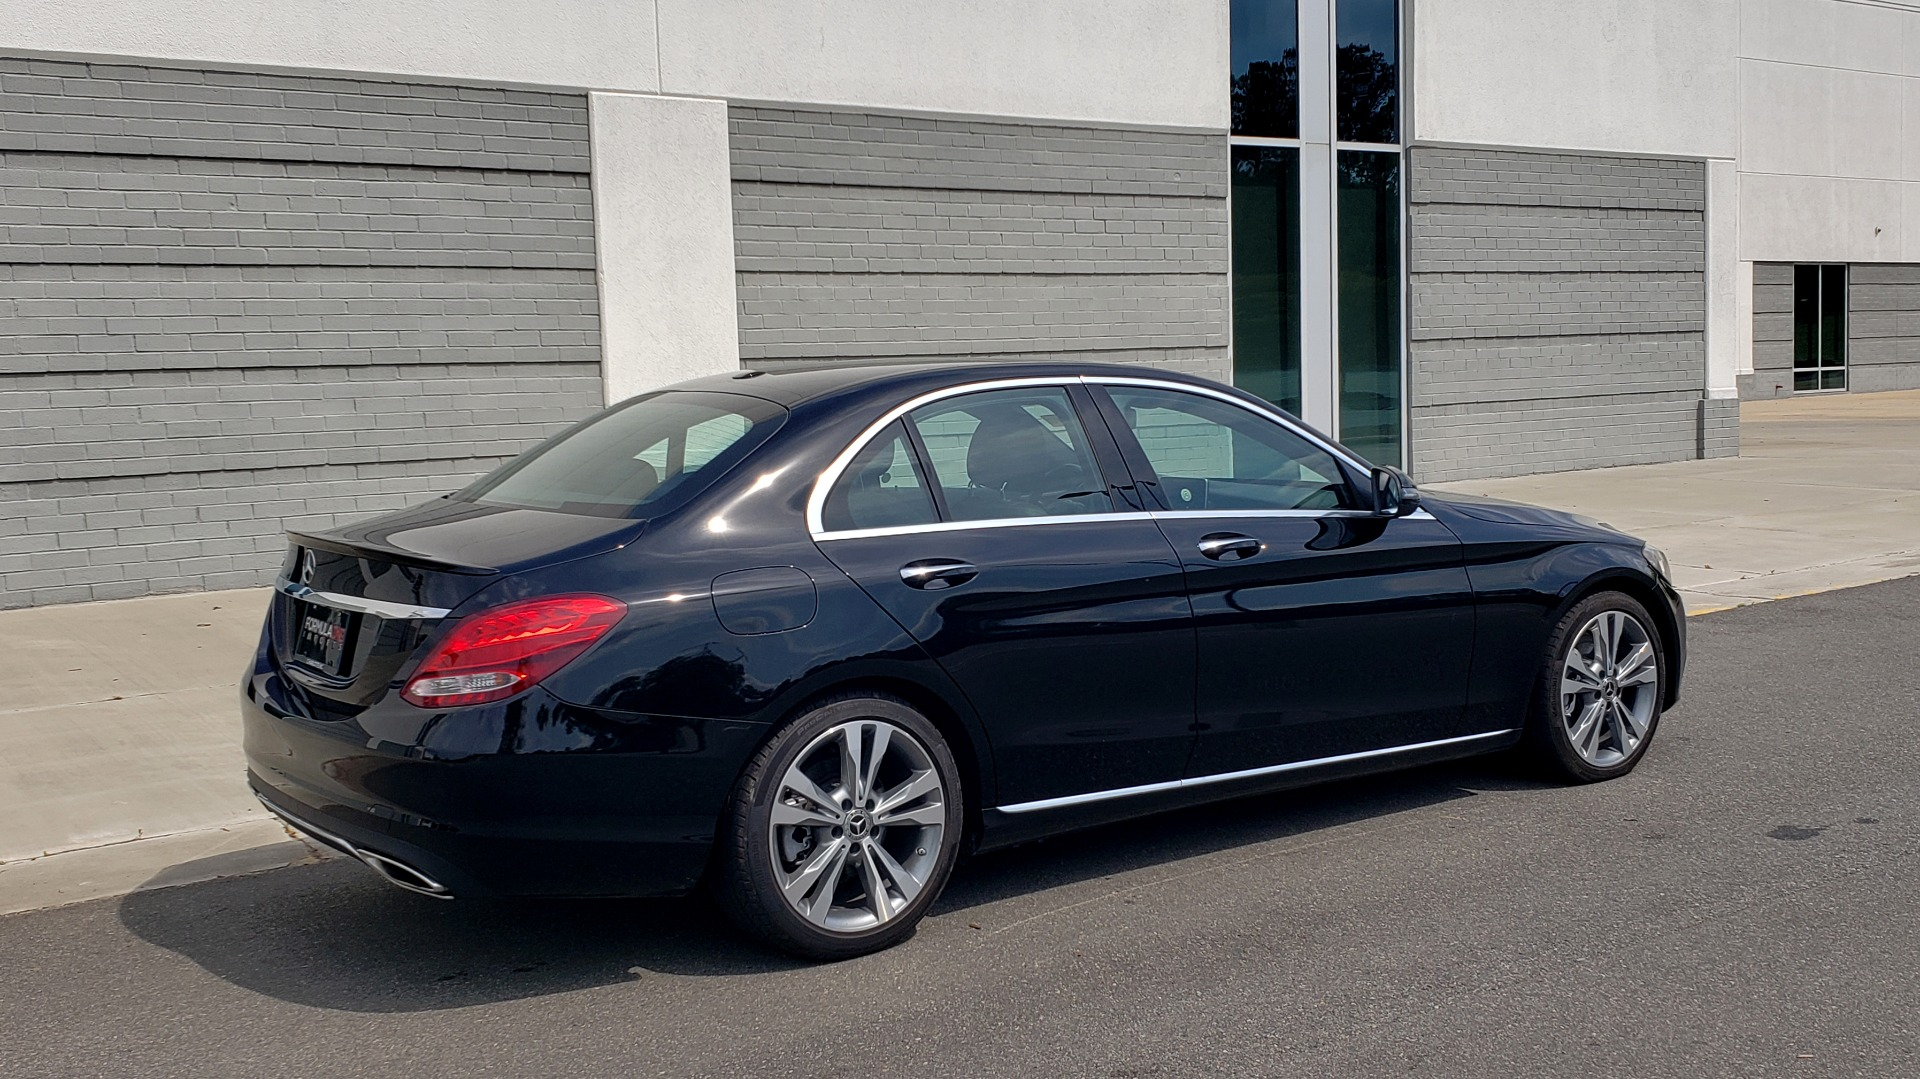 Used 2018 Mercedes-Benz C-CLASS C 300 PREMIUM / HTD STS / APPLE CARPLAY / 18IN WHEELS / REARVIEW for sale $24,795 at Formula Imports in Charlotte NC 28227 8